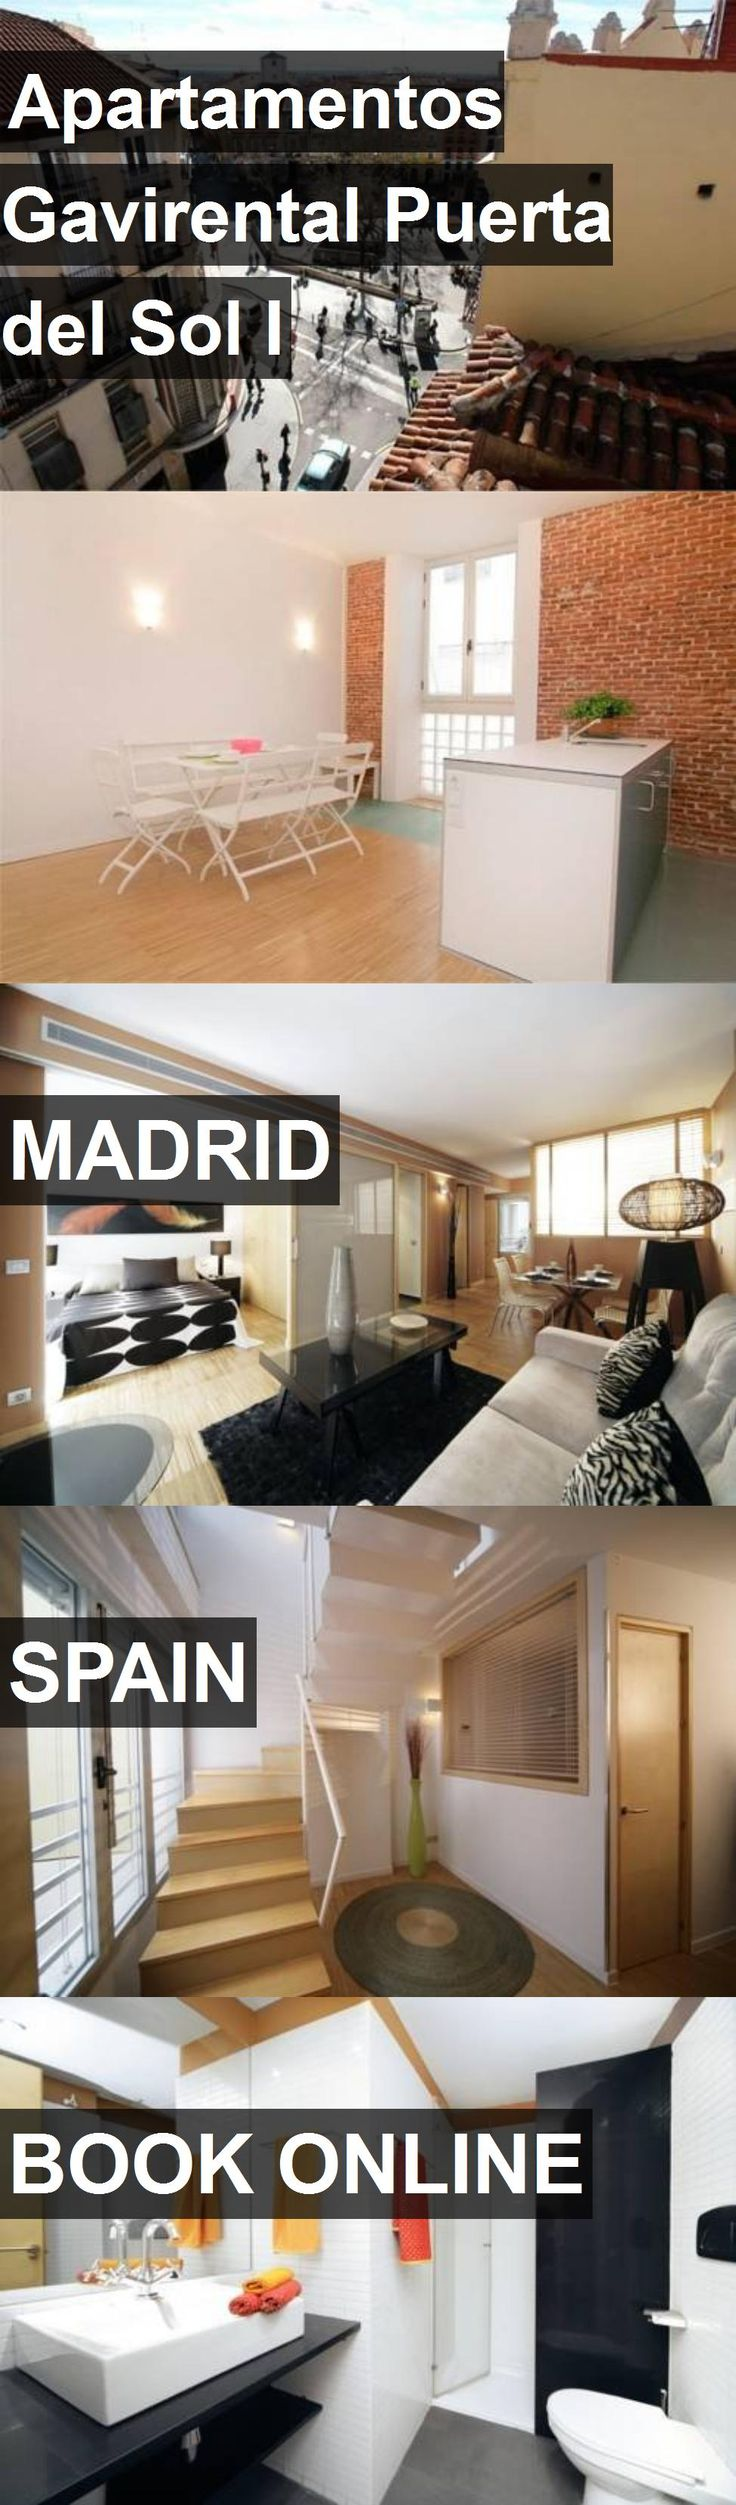 Hotel Apartamentos Gavirental Puerta del Sol I in Madrid, Spain. For more information, photos, reviews and best prices please follow the link. #Spain #Madrid #travel #vacation #hotel